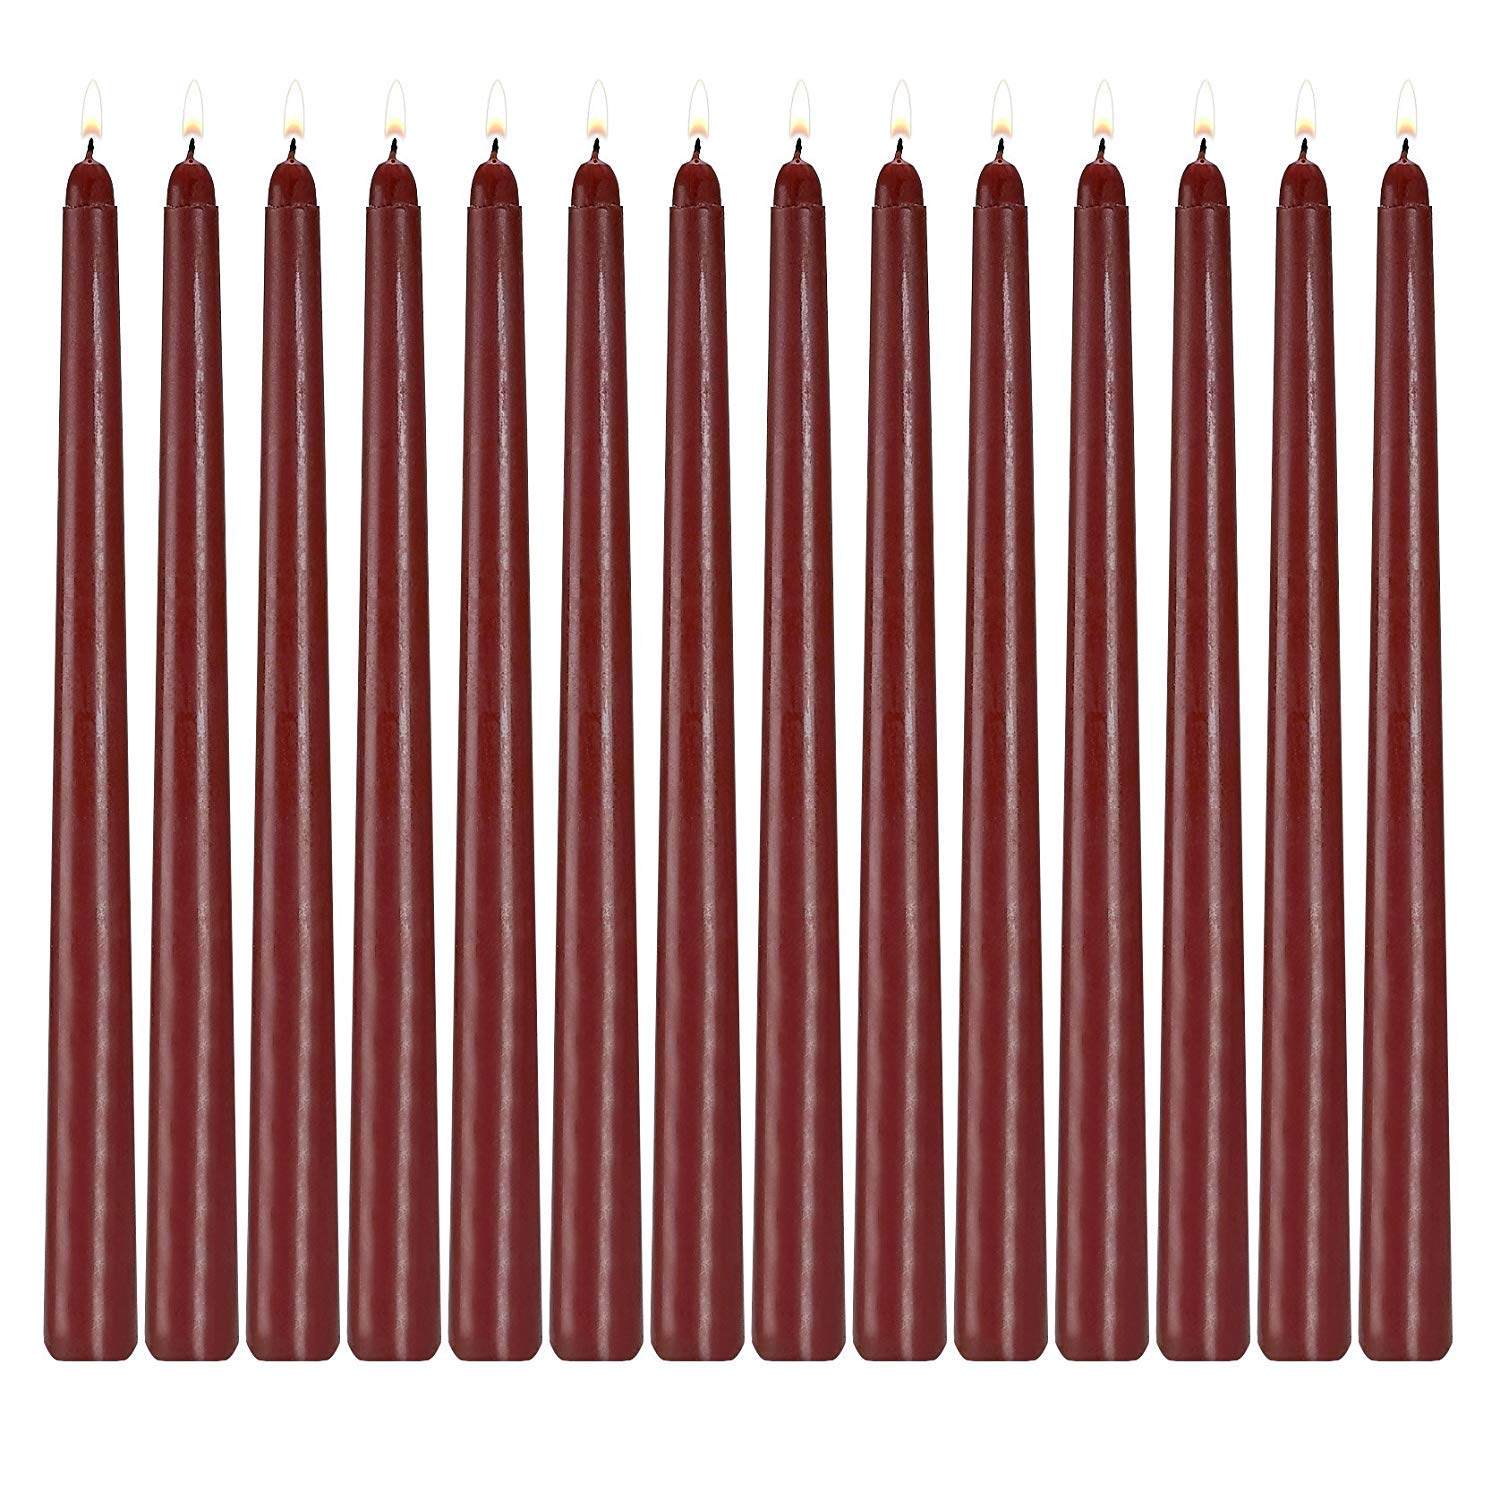 Howemon 14 Pack Dark Red Taper Candles 12 Inch Tall 3//4 Inch Thick Burn 10 Hours Burgundy